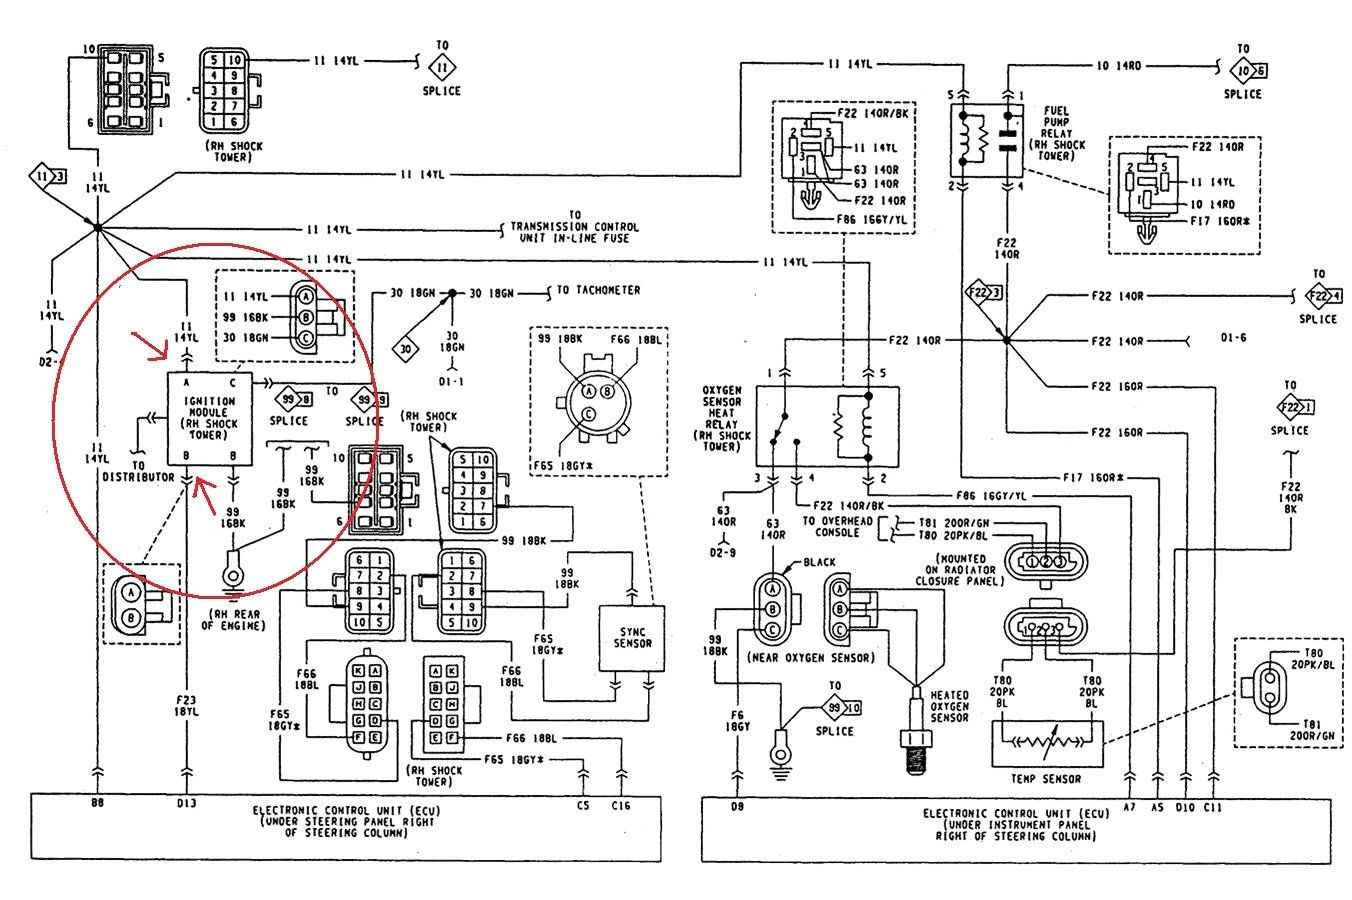 Jeep Cherokee Ignition Wiring Diagram Database